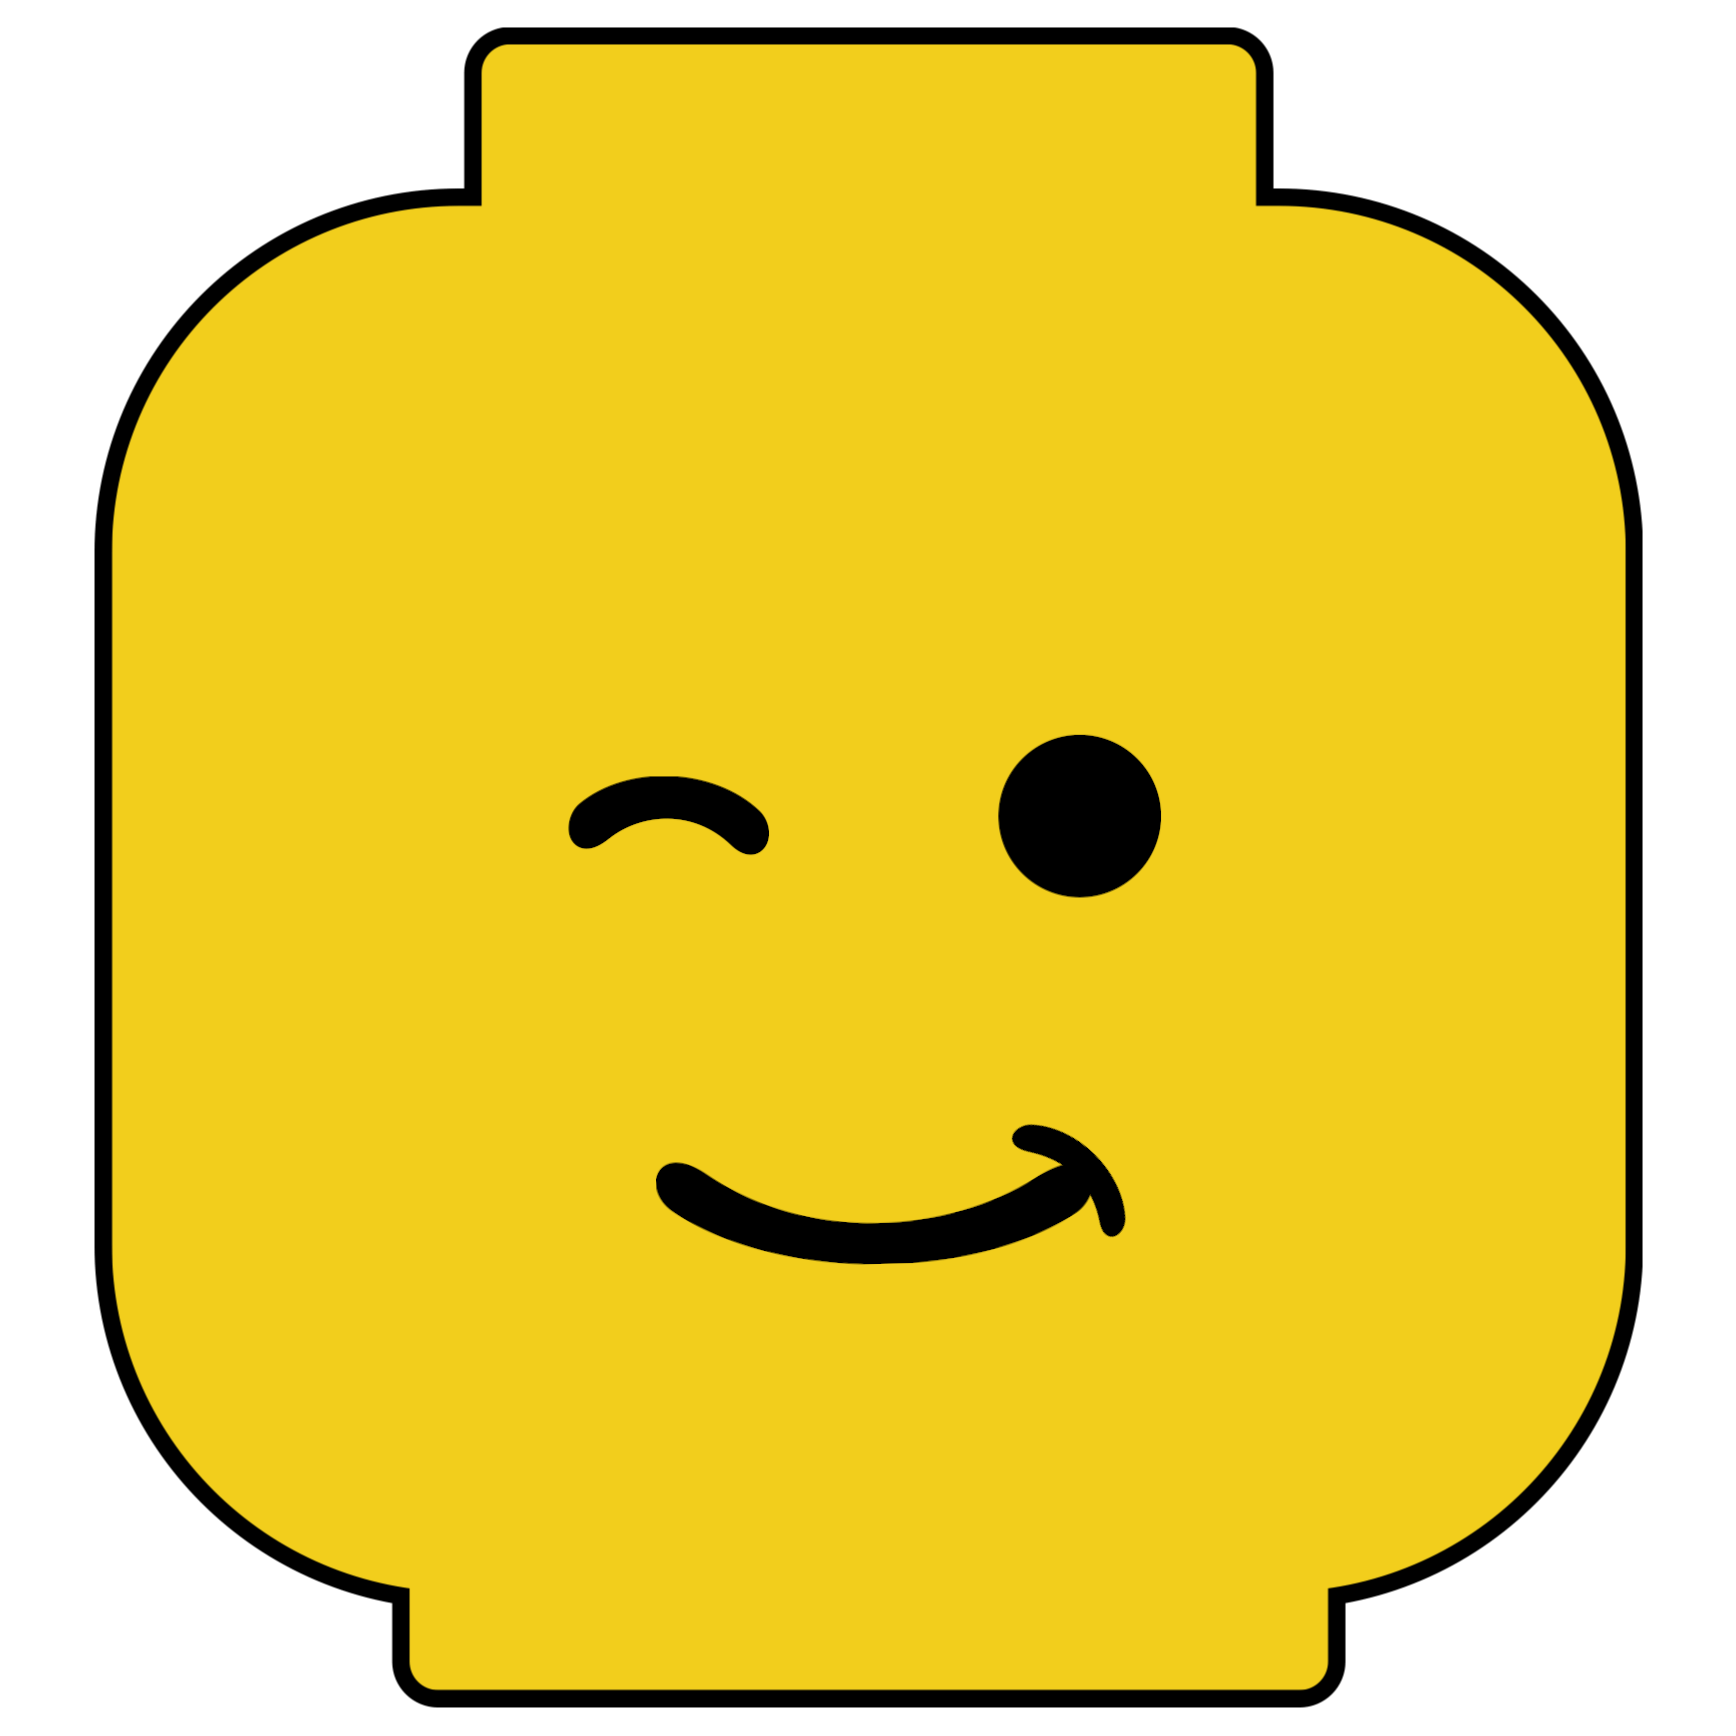 Blank lego man clipart images gallery for free download.